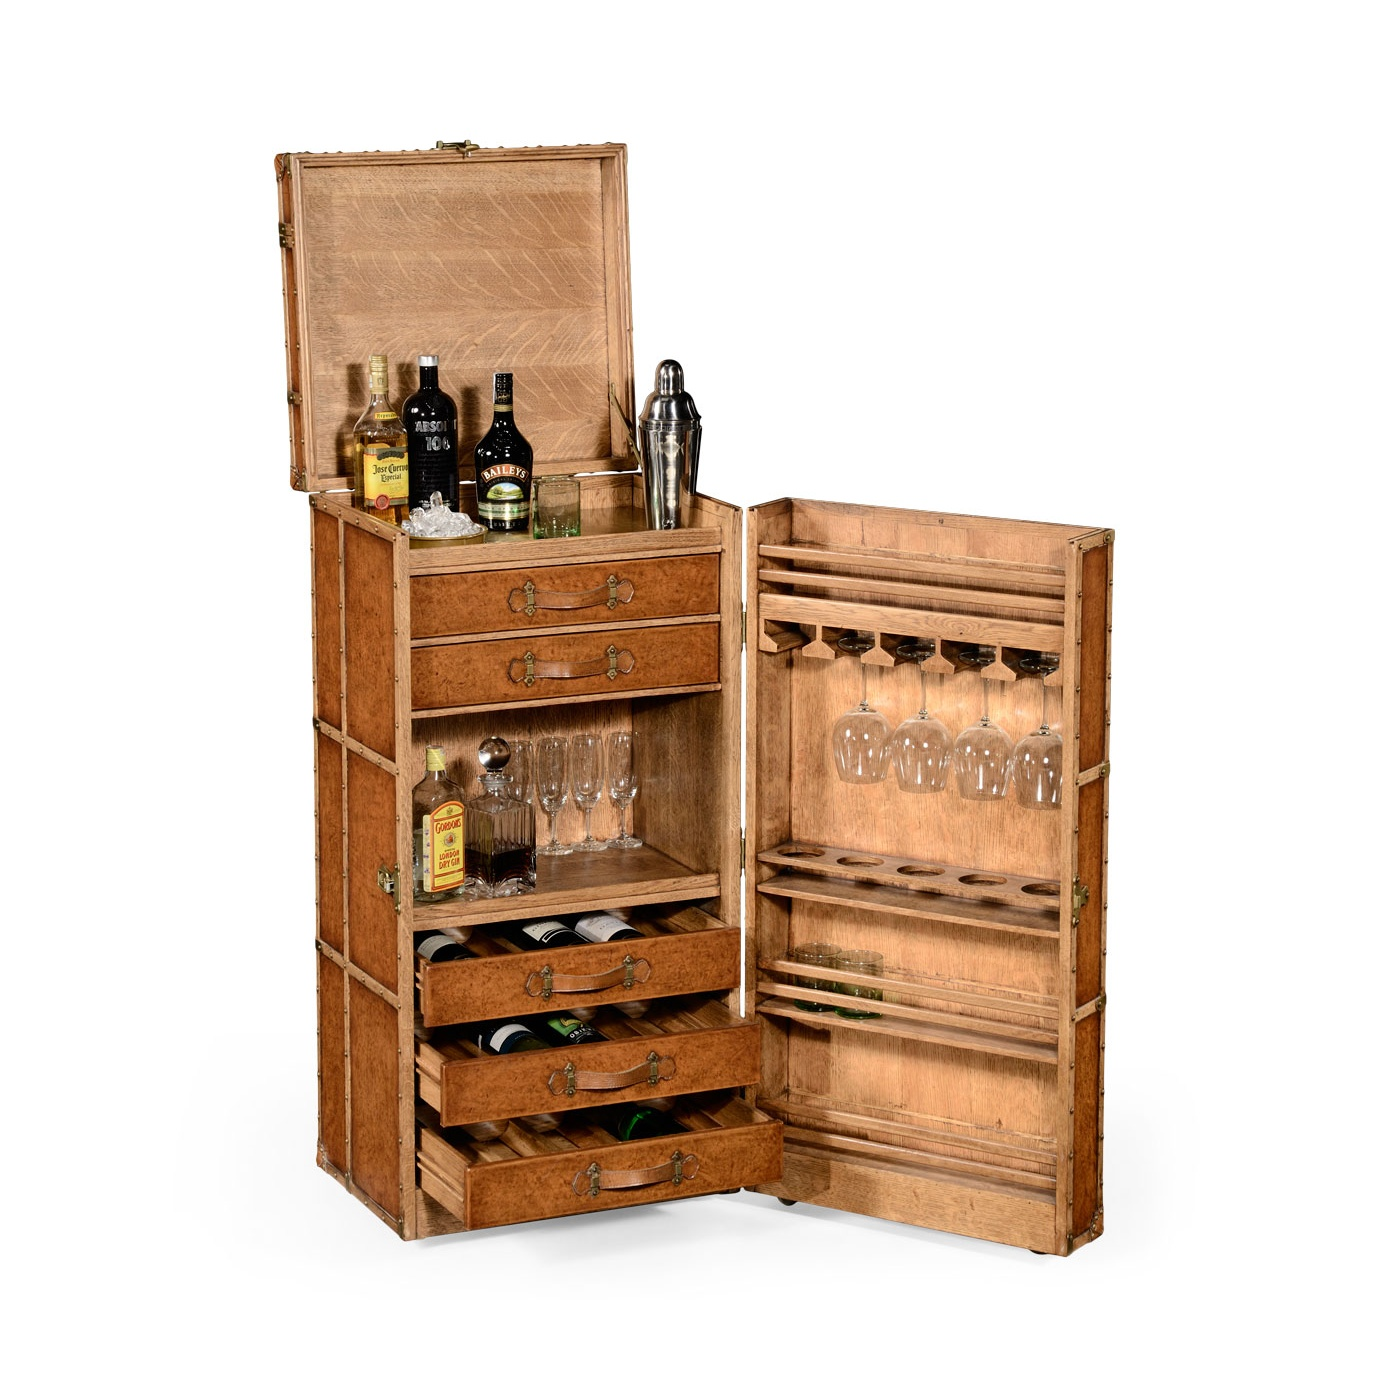 Garden Wall Stickers Drinks Cabinet In Travel Trunk Style Swanky Interiors